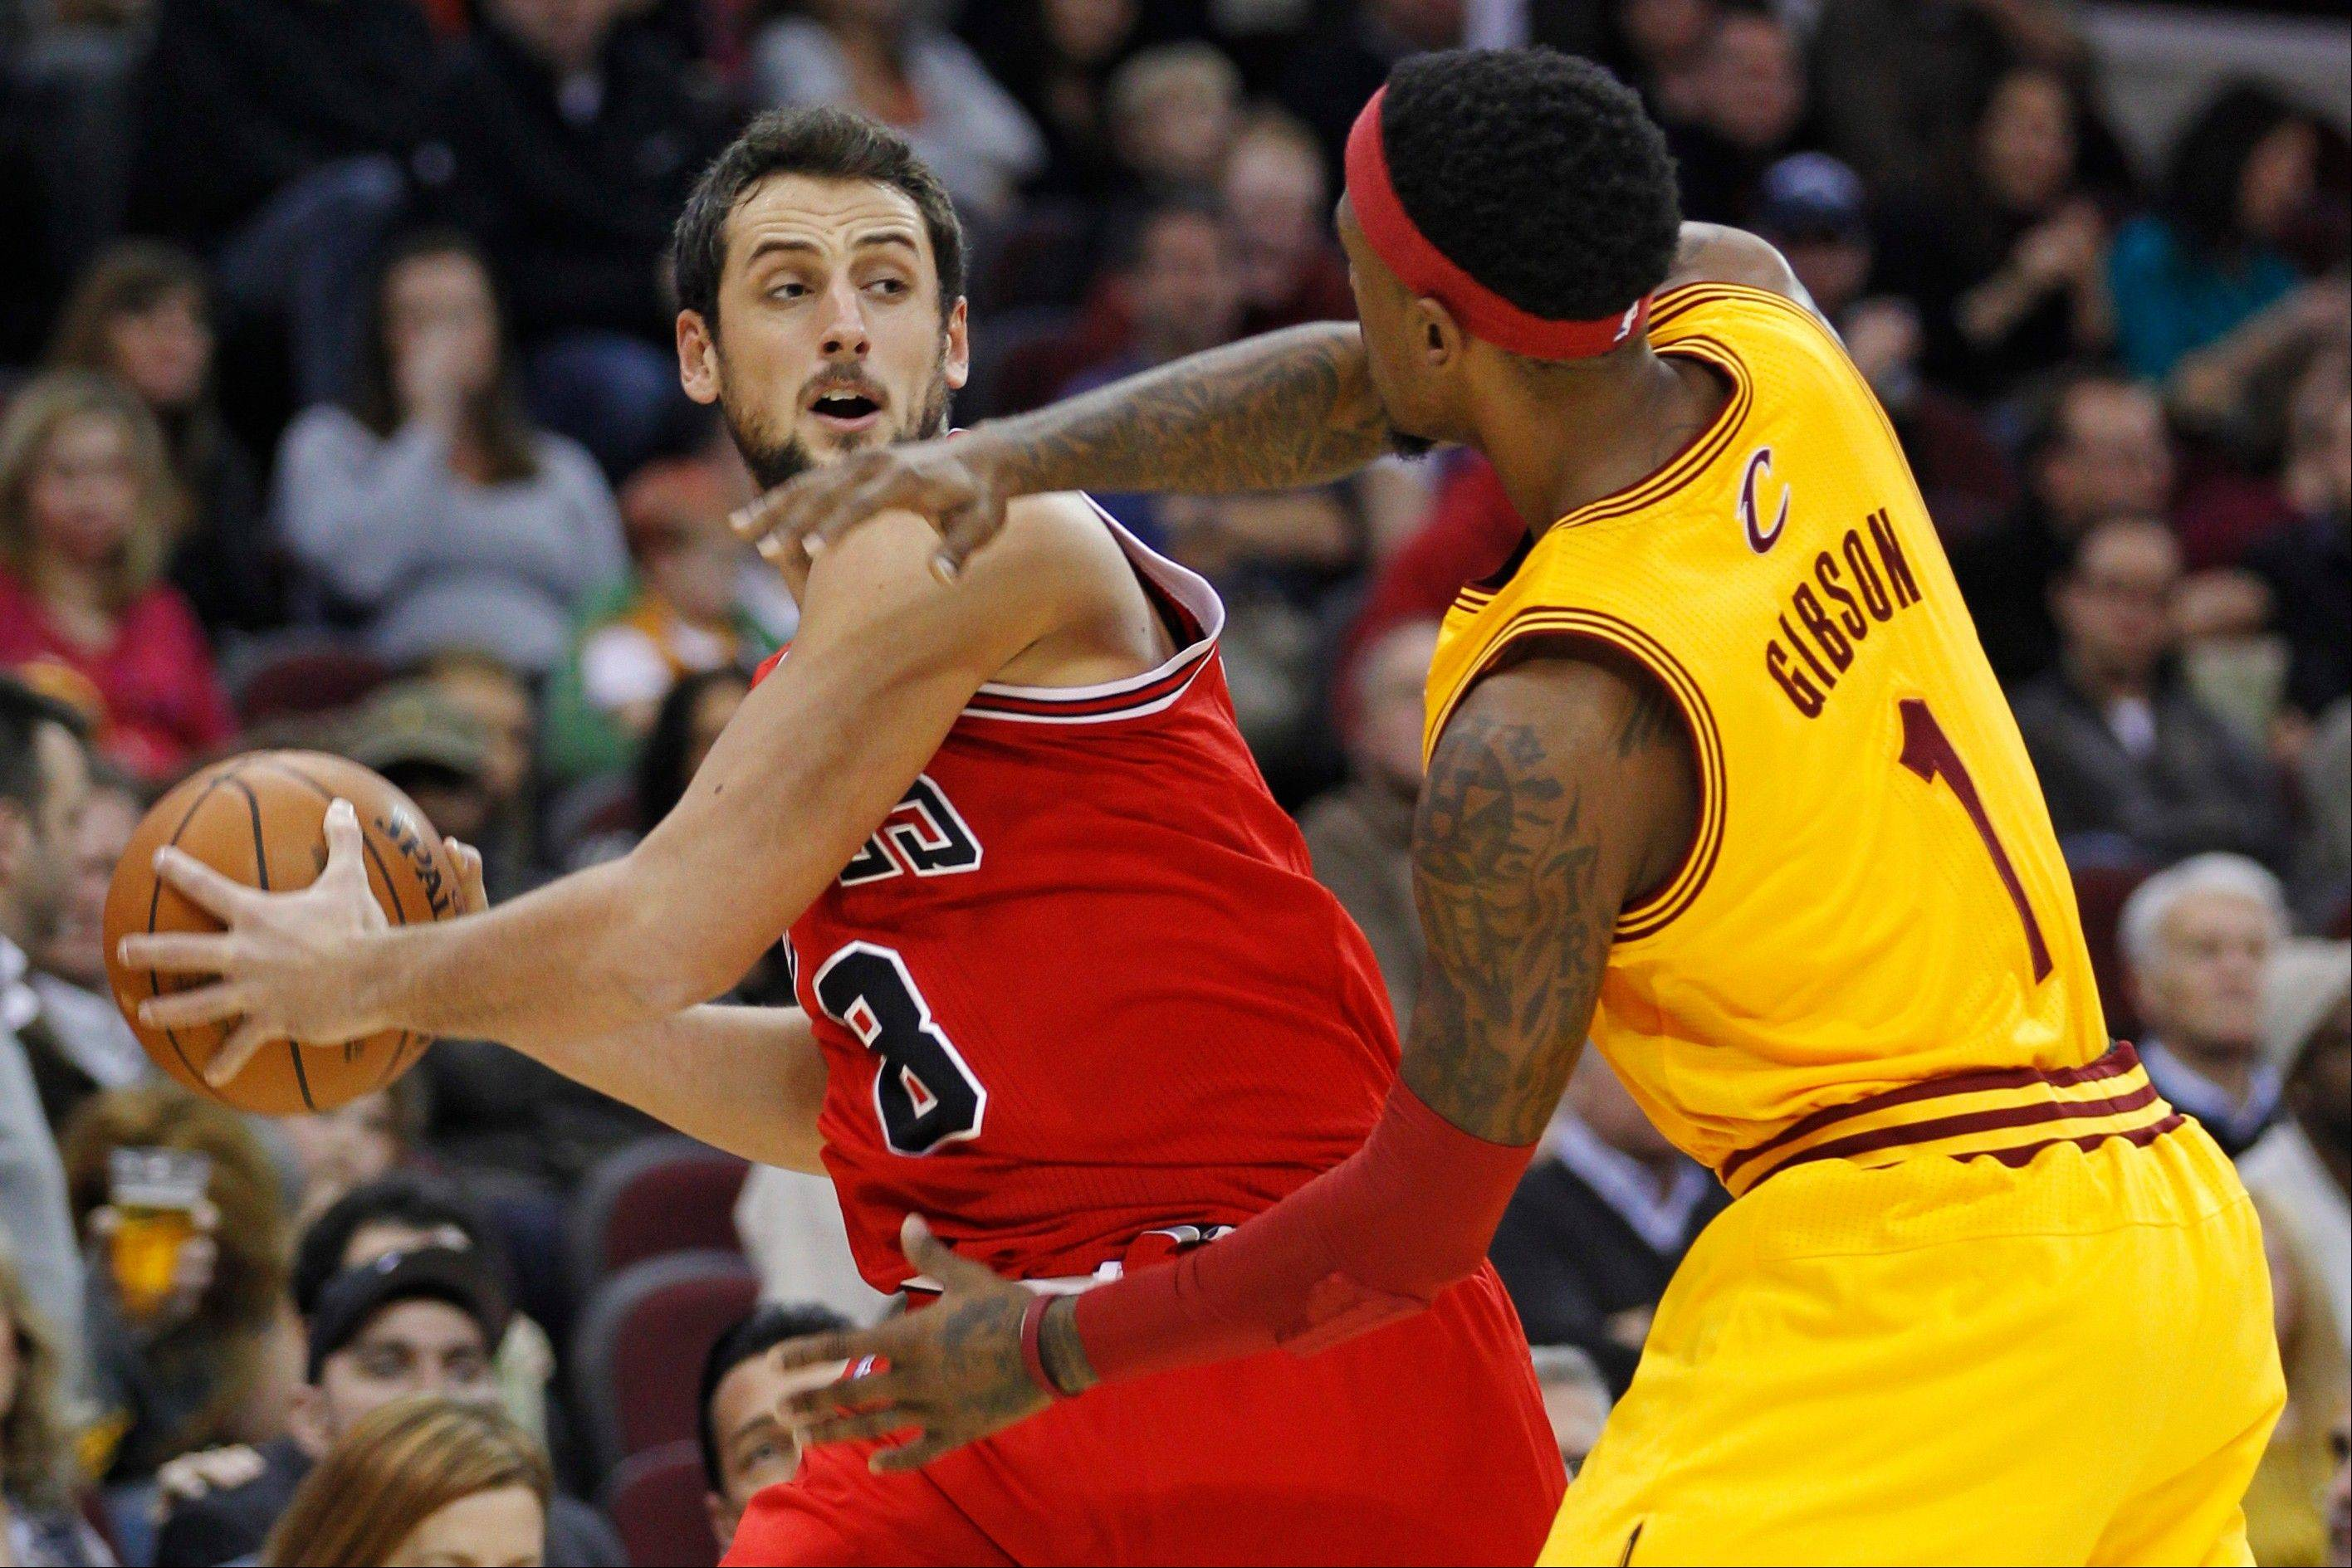 The Bulls� Marco Belinelli is pressured by Cleveland�s Daniel Gibson in the first quarter Wednesday night in Cleveland. Belinelli finished with 23 points in the Bulls� 95-85 victory.